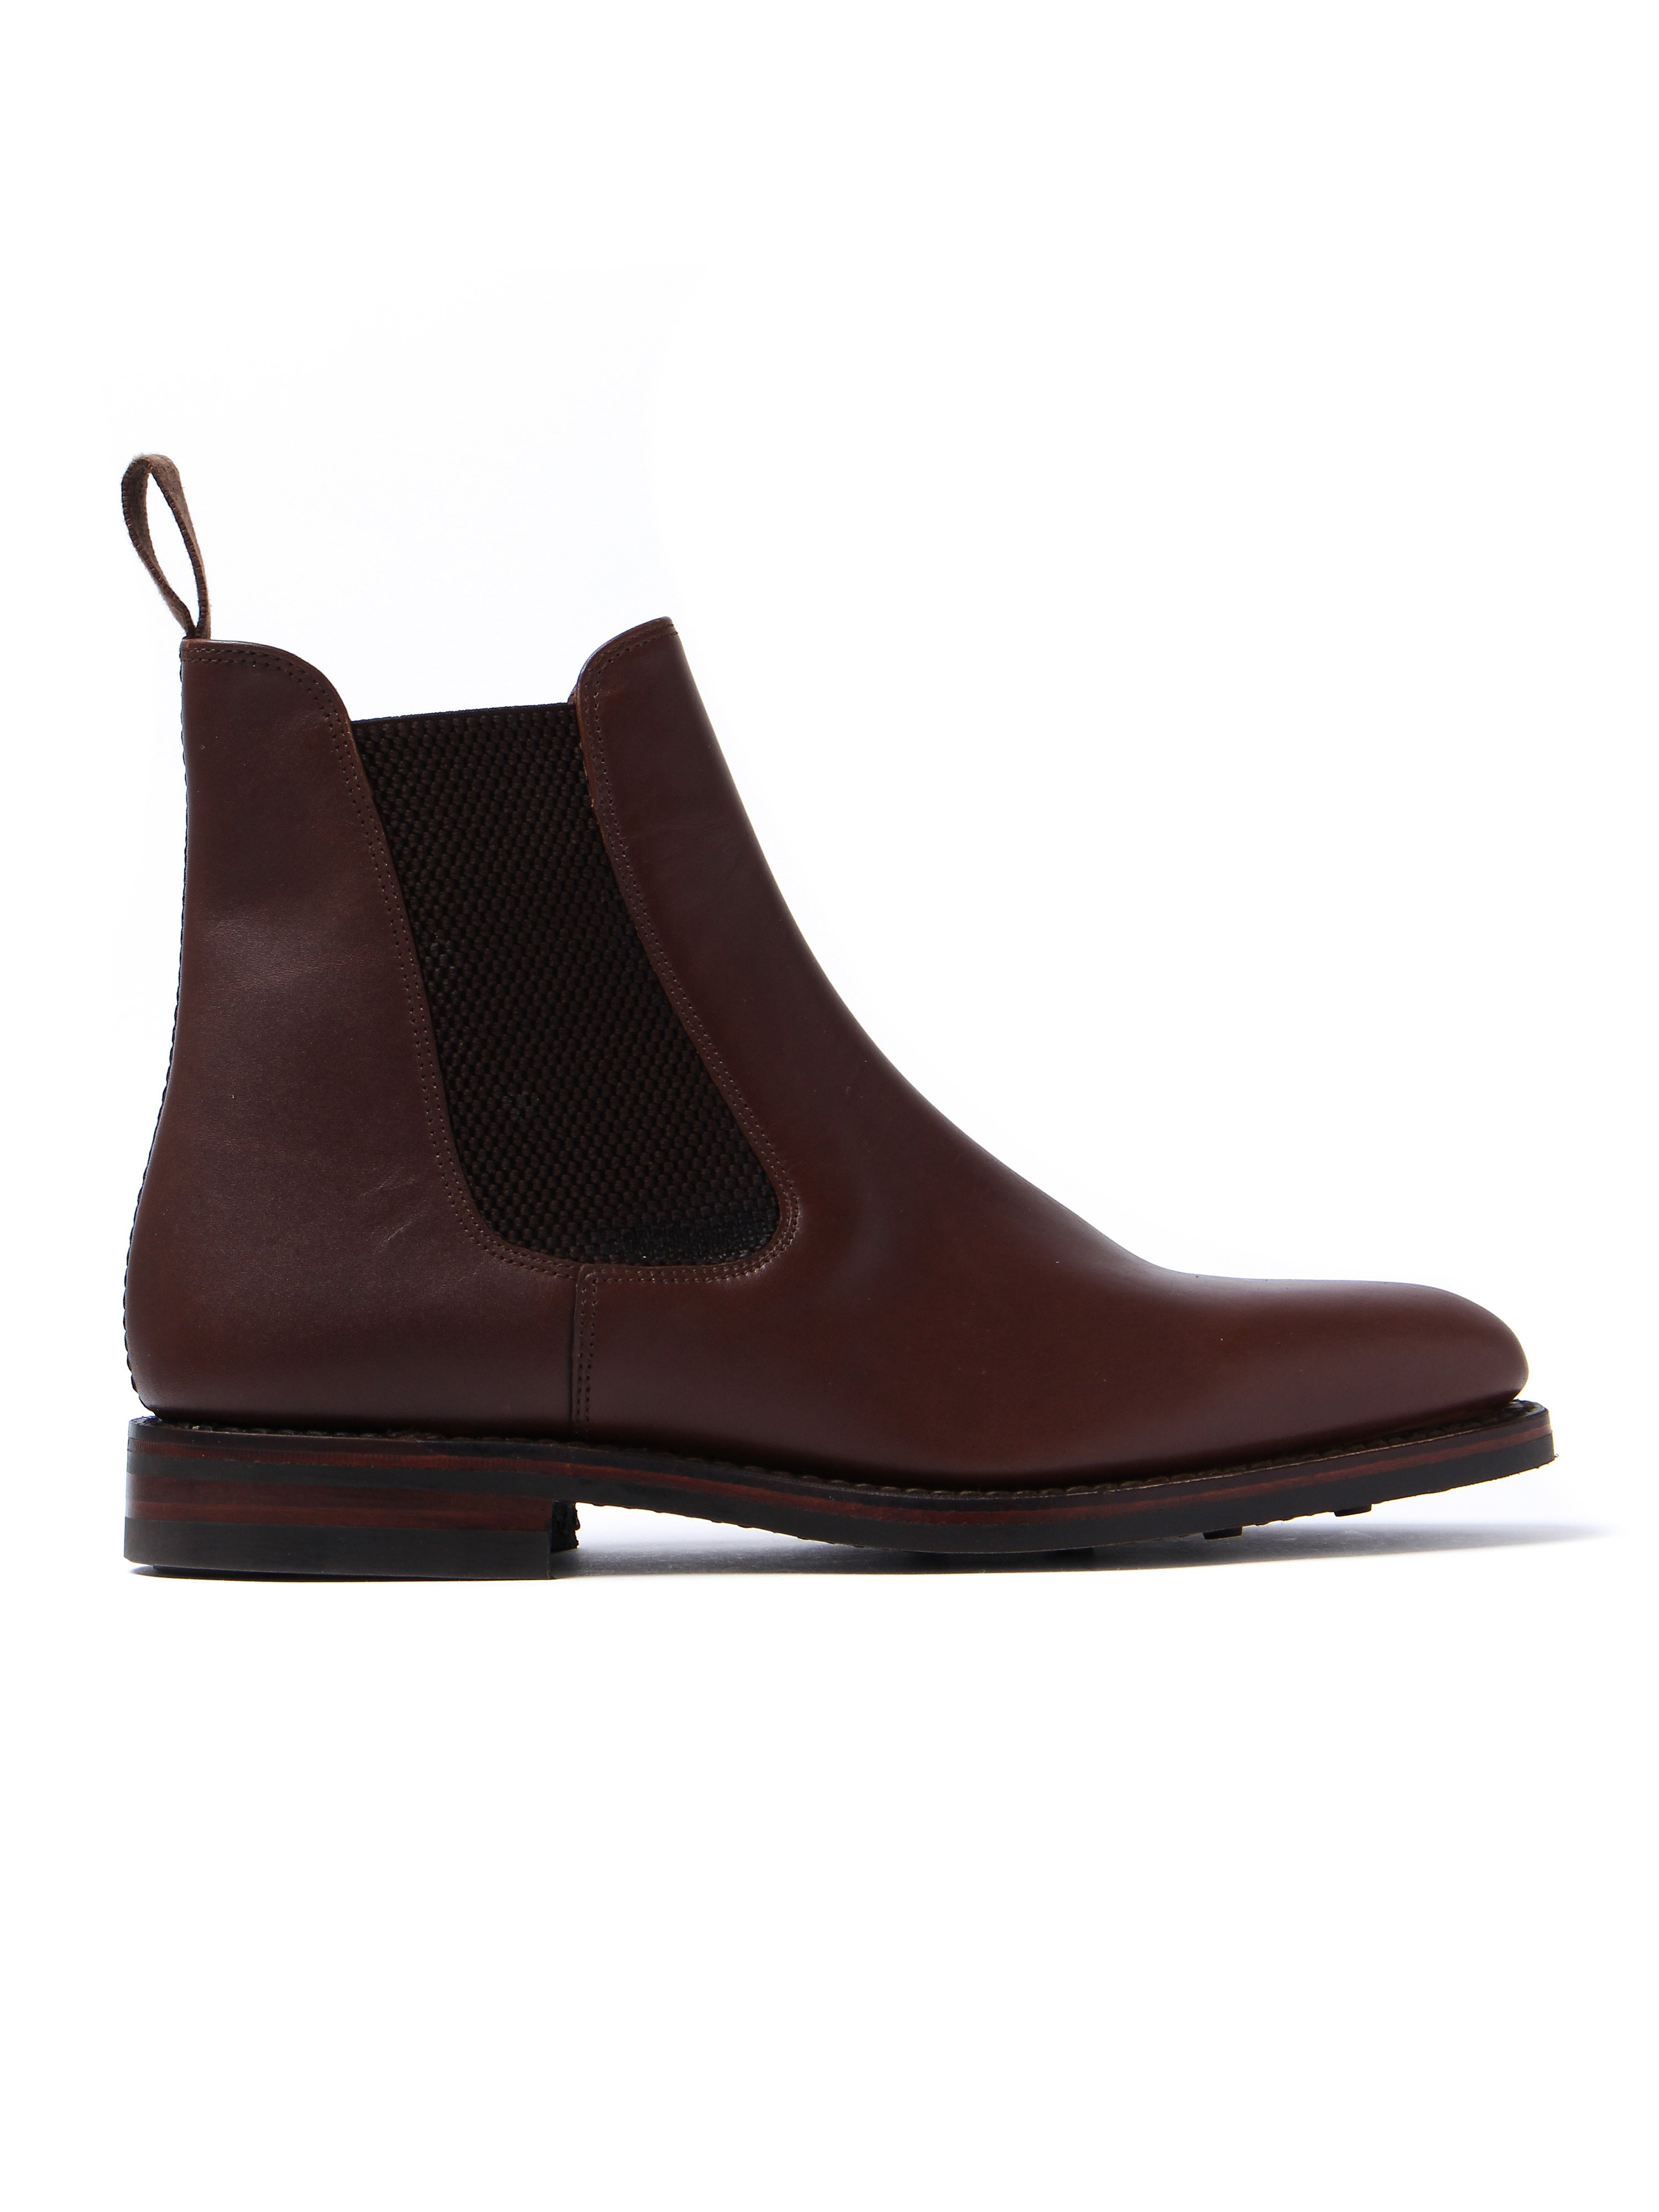 Loake Men's Blenheim Waxy Leather Chelsea Boots - Brown